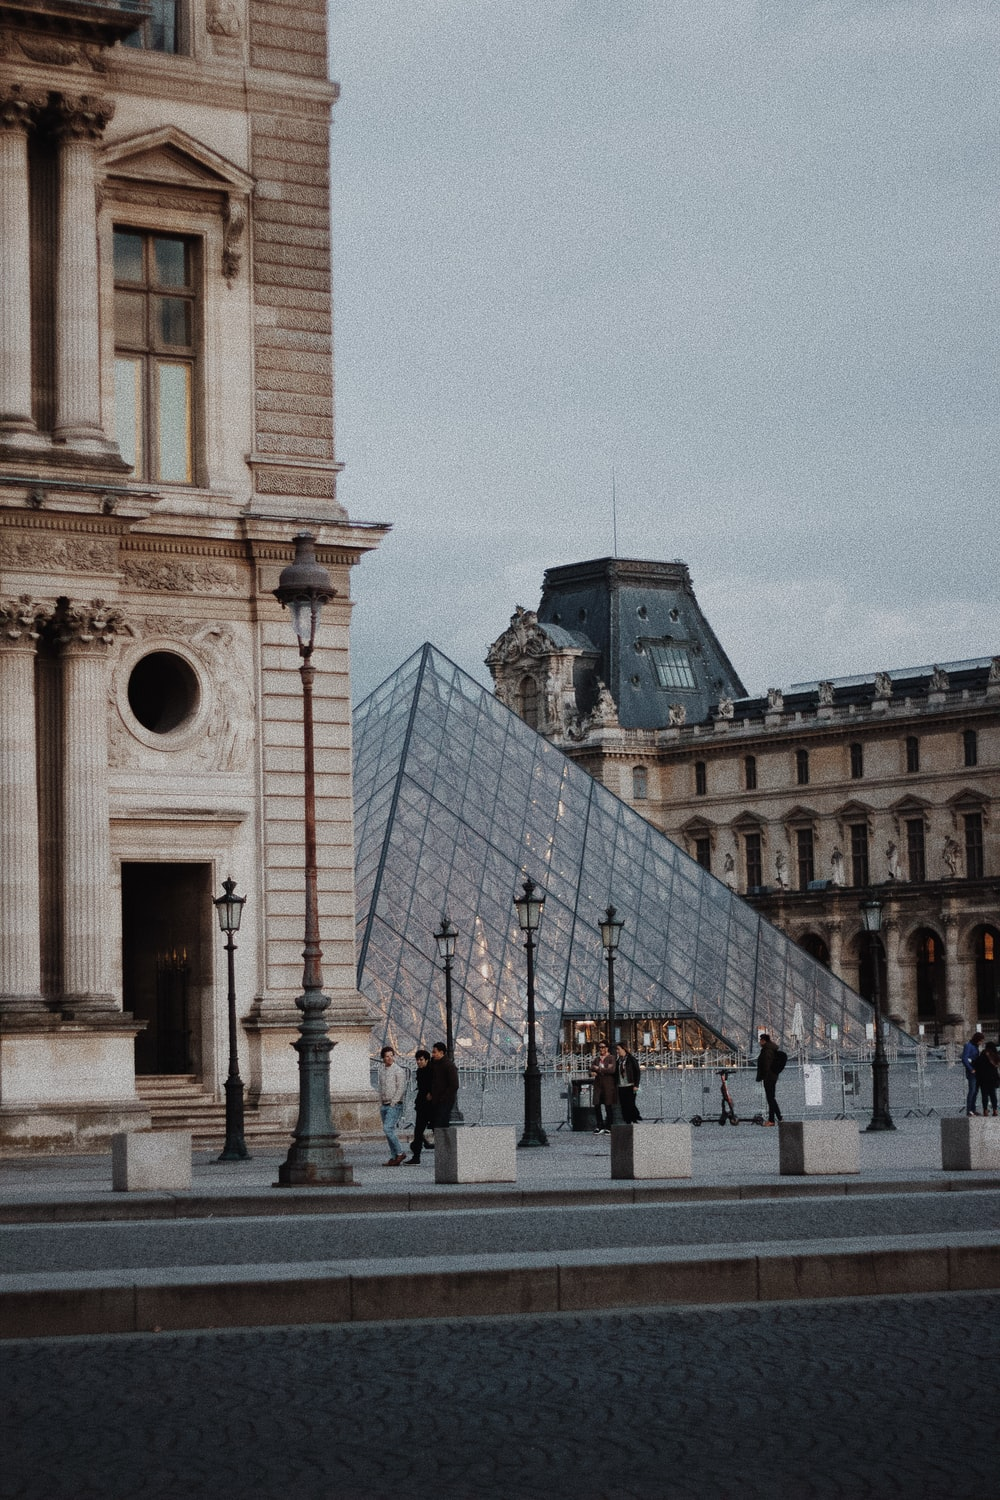 Louvre Museum during daytime